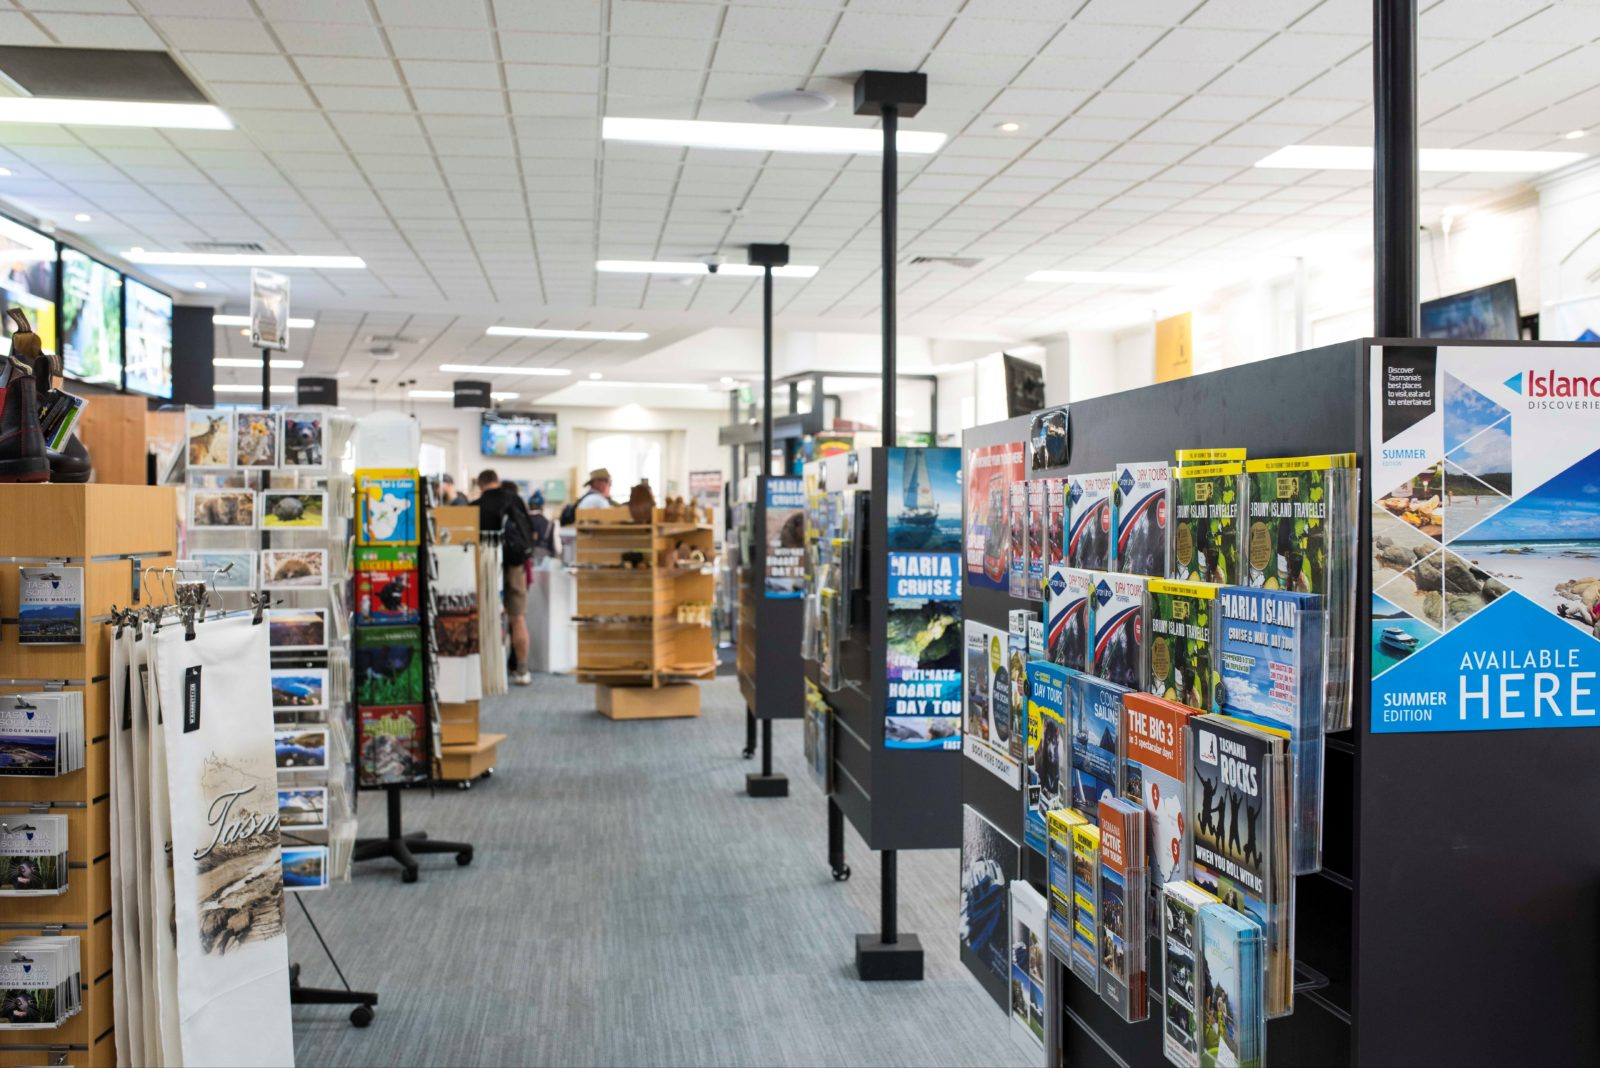 Tasmanian Travel and Information Centre